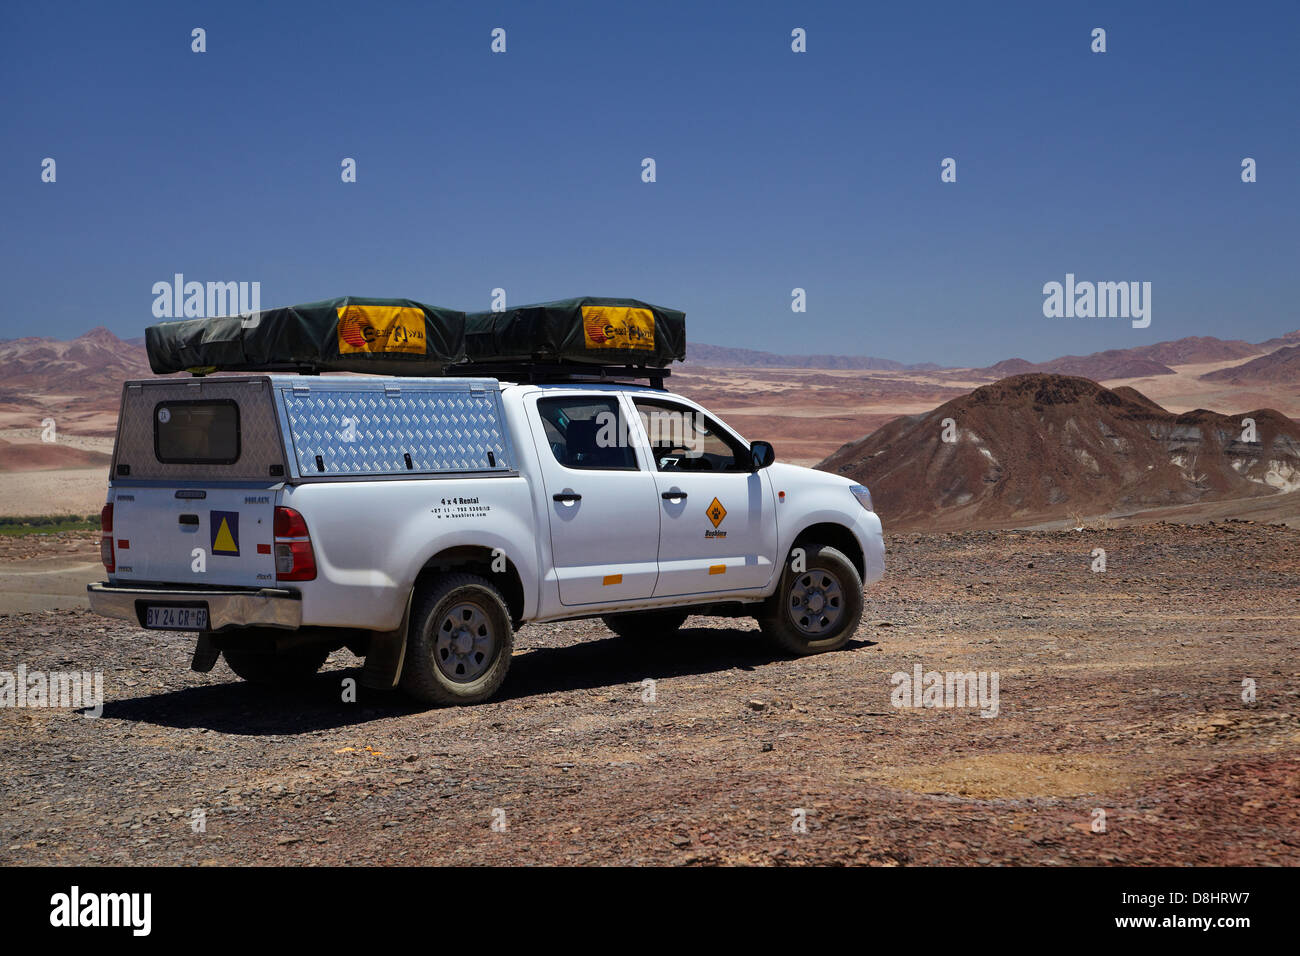 Toyota Hilux camper, Aussenkehr Nature Park 4x4 trail, Southern Namibia, Africa - Stock Image